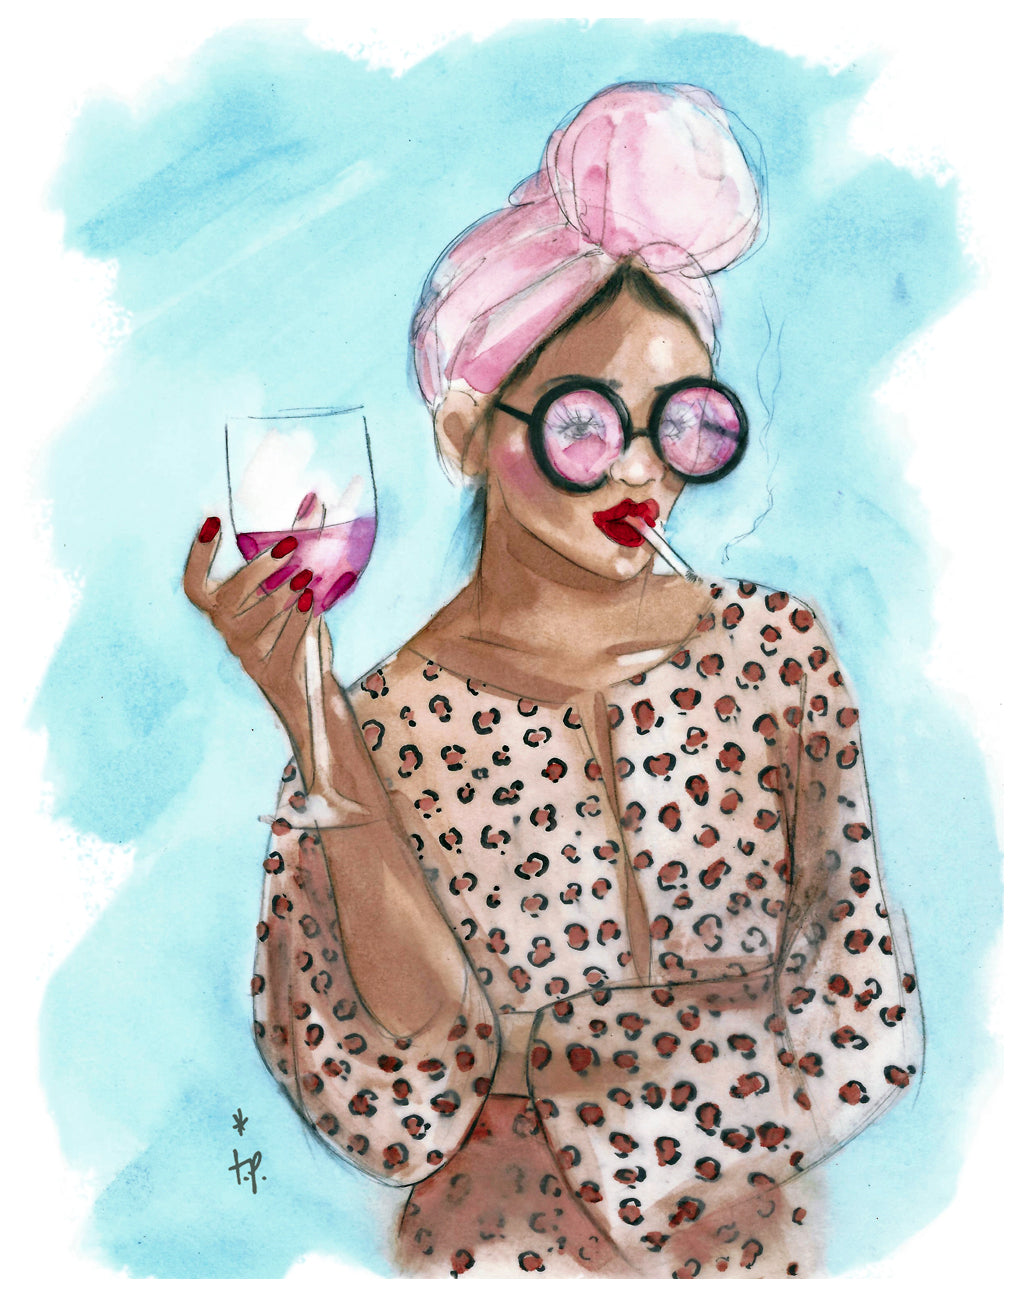 Print of a woman holding a glass of wine and wearing a headscarf by Tatiana Poblah